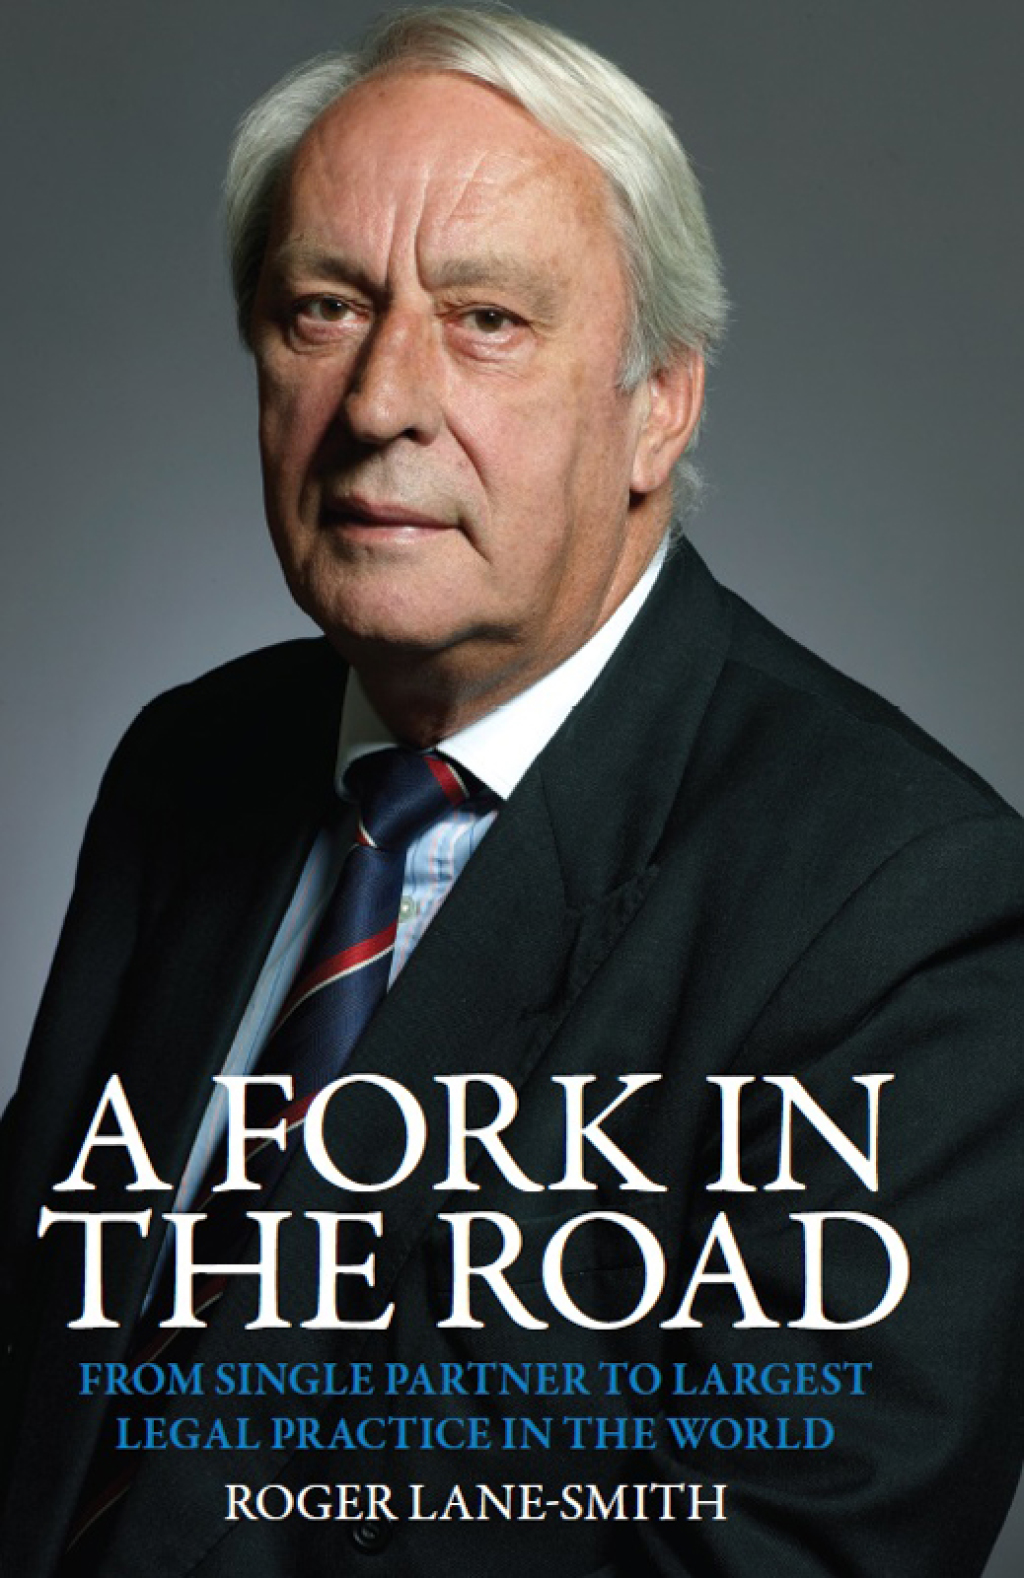 A Fork in the Road (ebook) eBooks